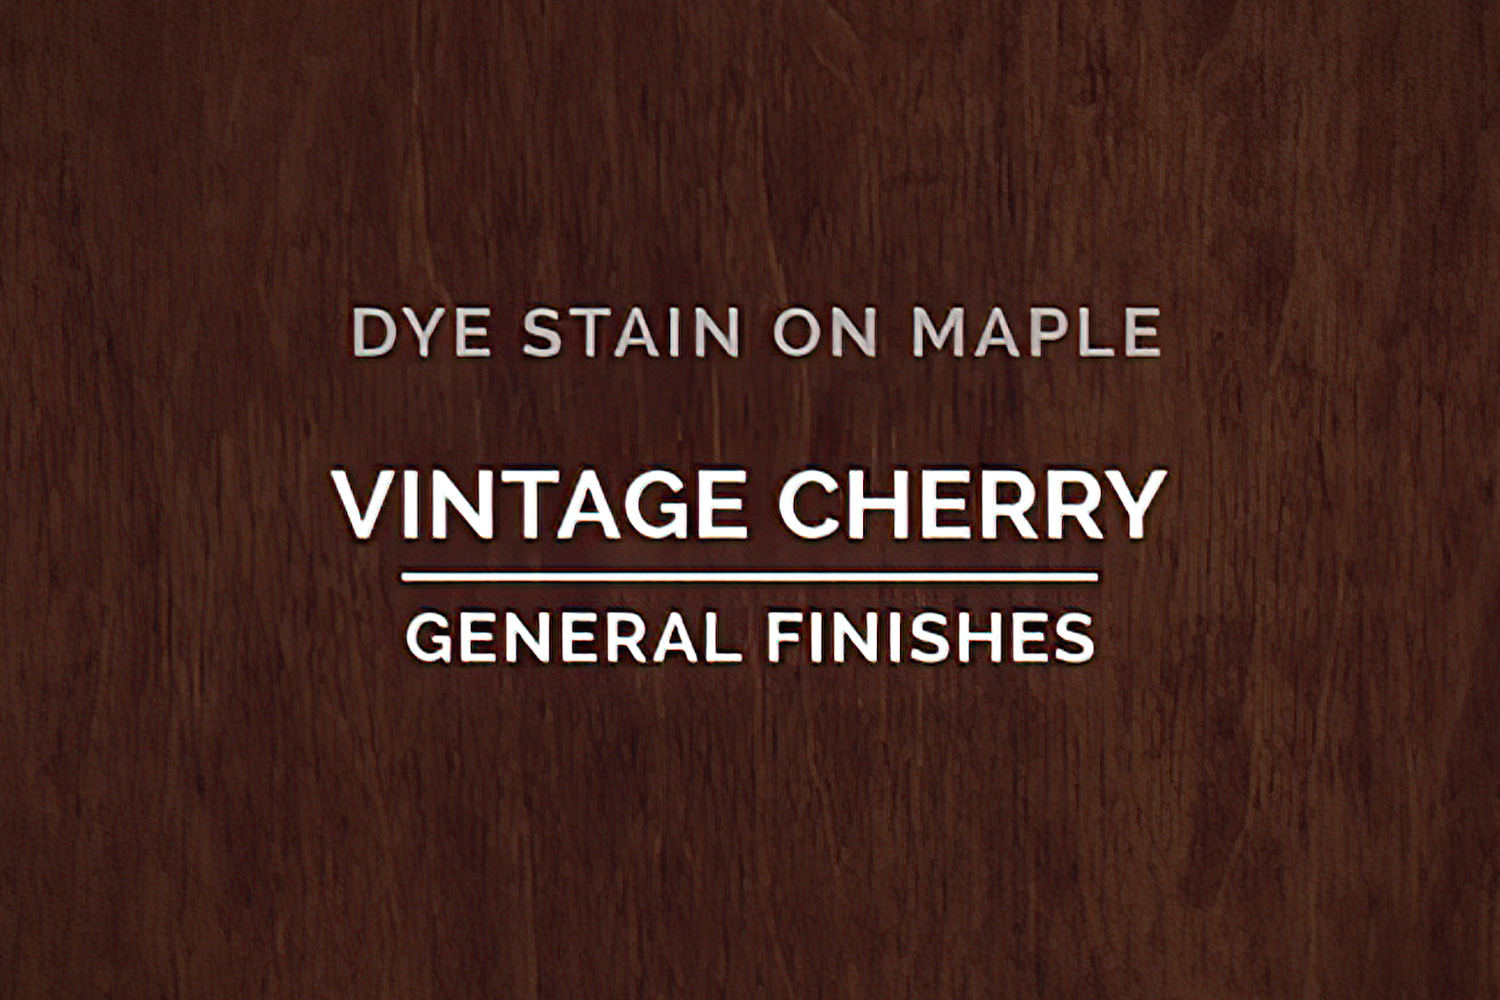 General Finishes Vintage Cherry Dye Pint